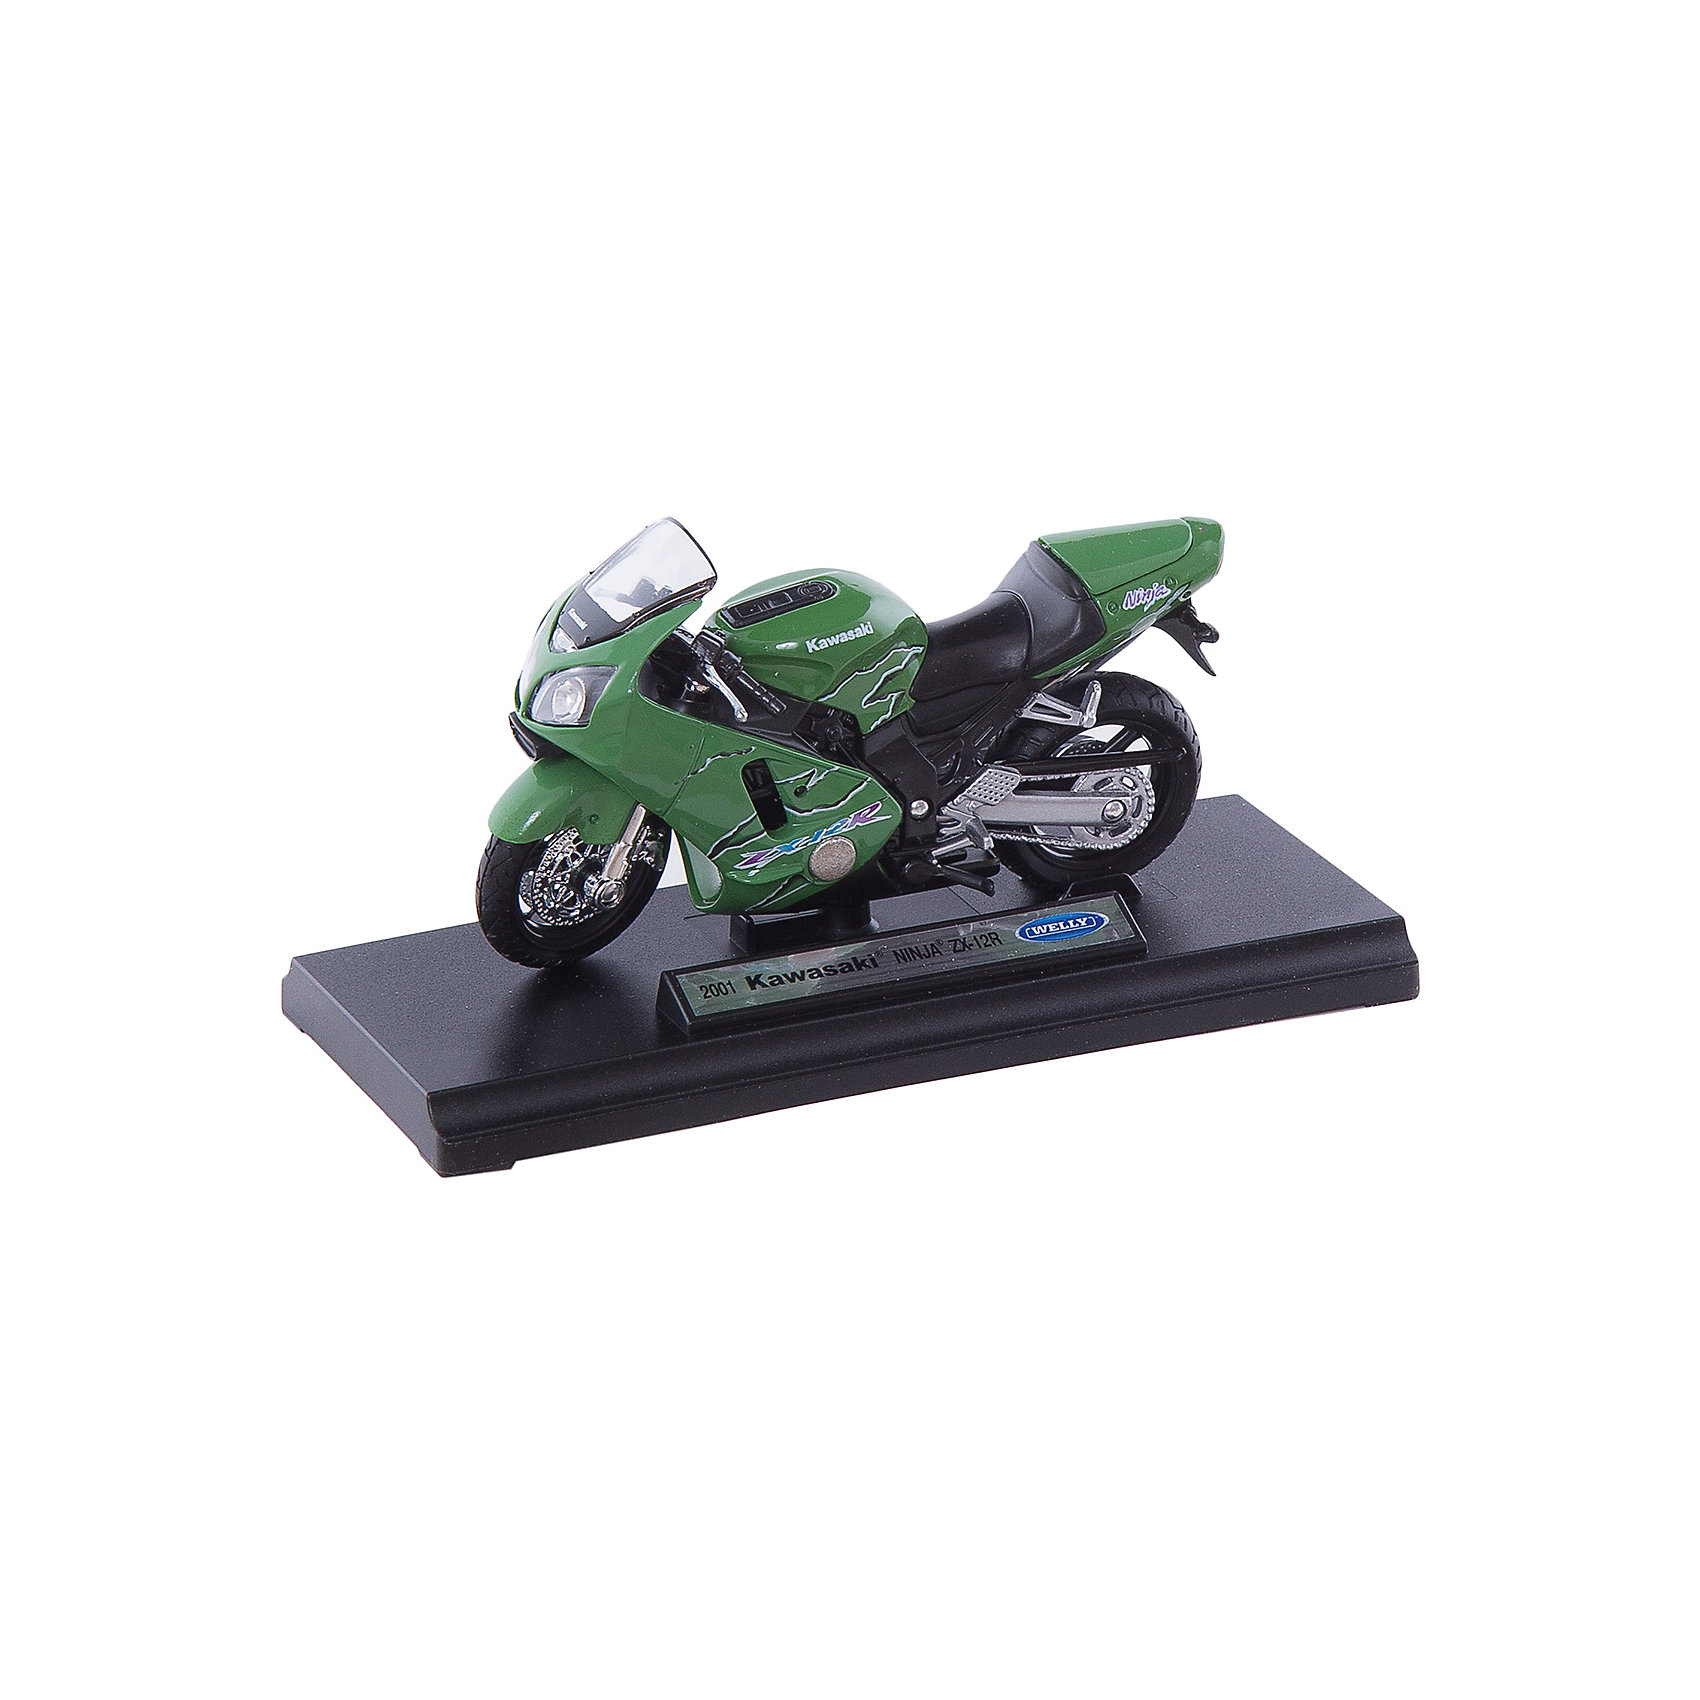 Welly Welly Модель мотоцикла 1:18 MOTORCYCLE / KAWASAKI 2001 NINJA  ZX-12R cnc billet adjustable footpeg racing rearset rear set for kawasaki ninja zx14 zx 14r zzr1400 2006 07 08 09 10 11 12 13 2014black